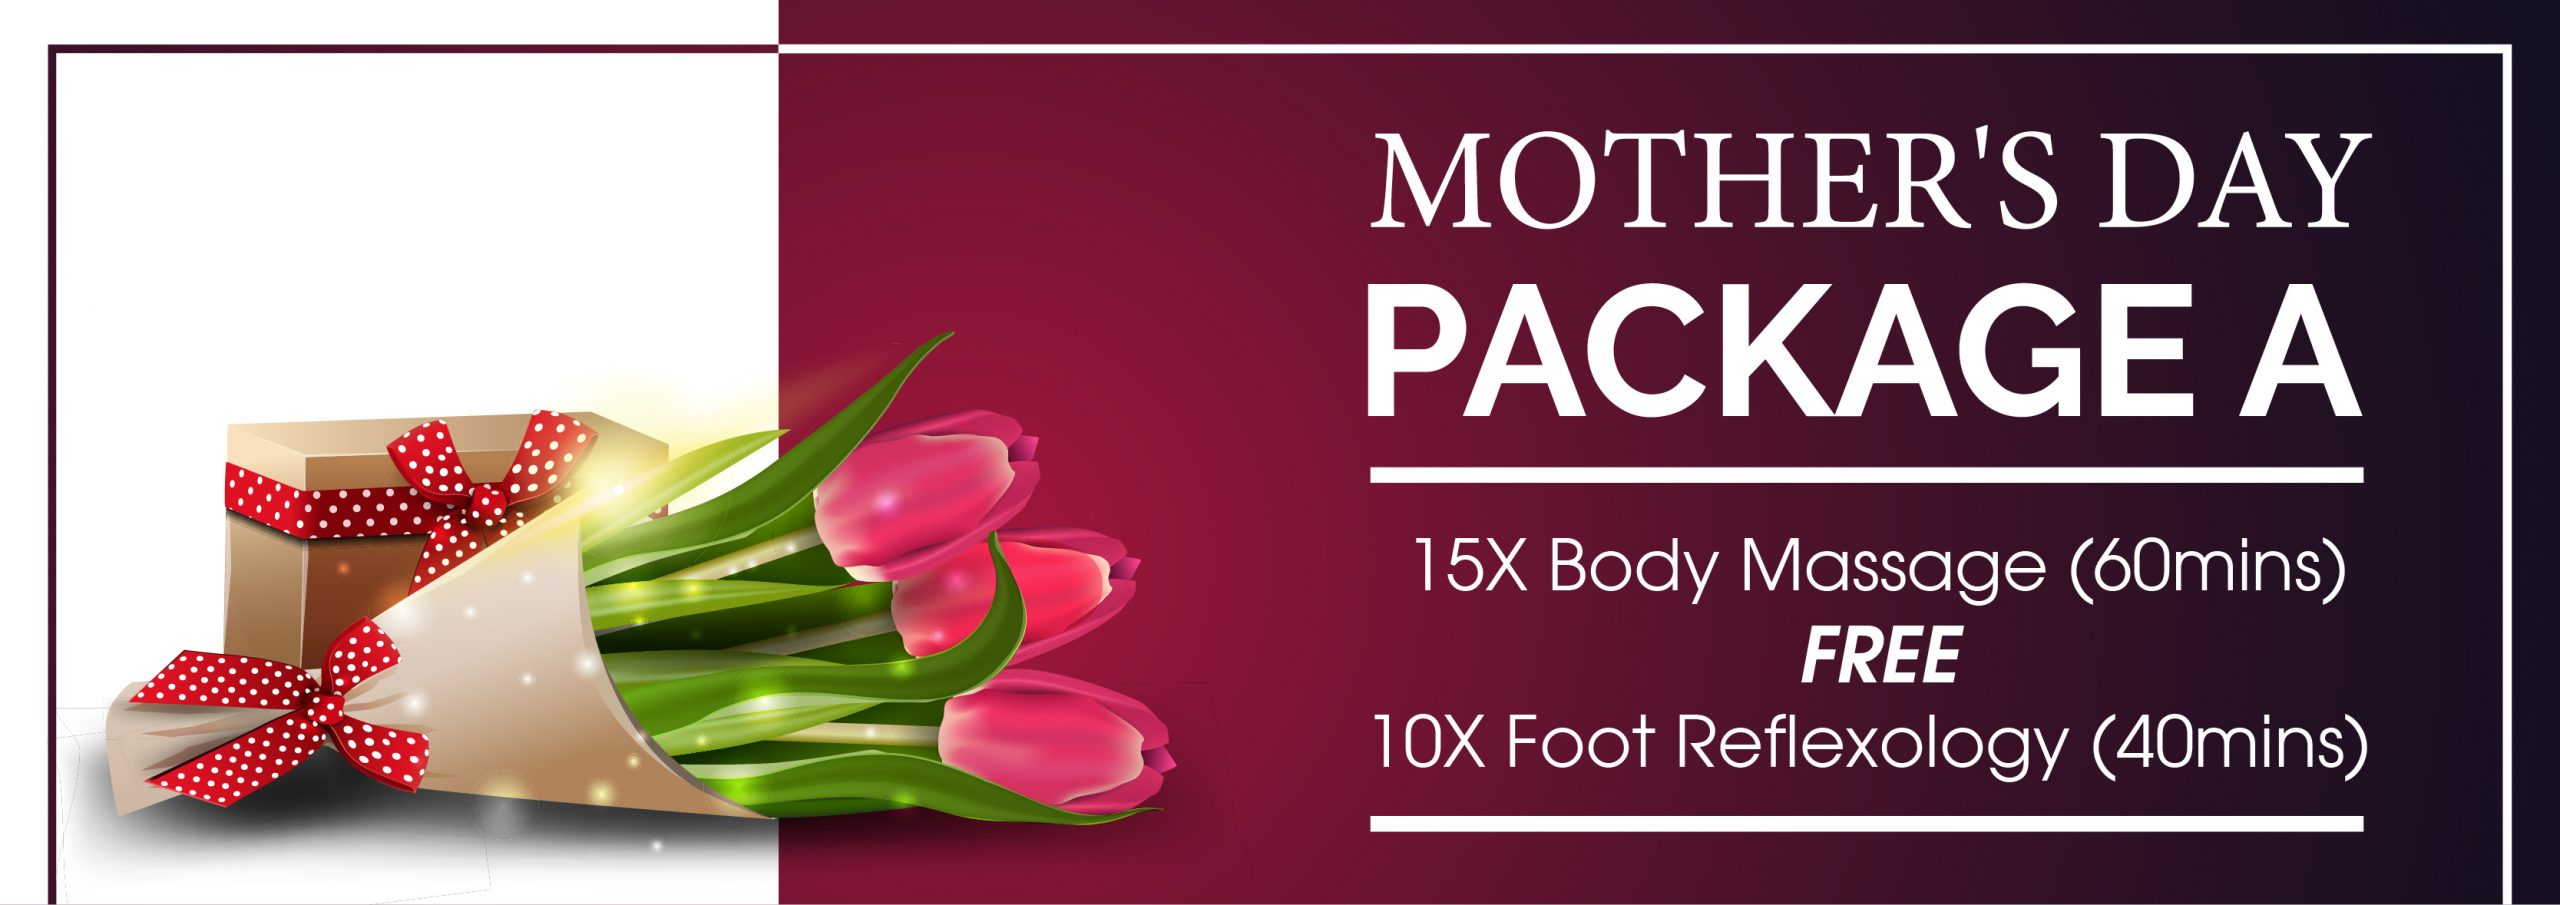 Mother's Day Package A